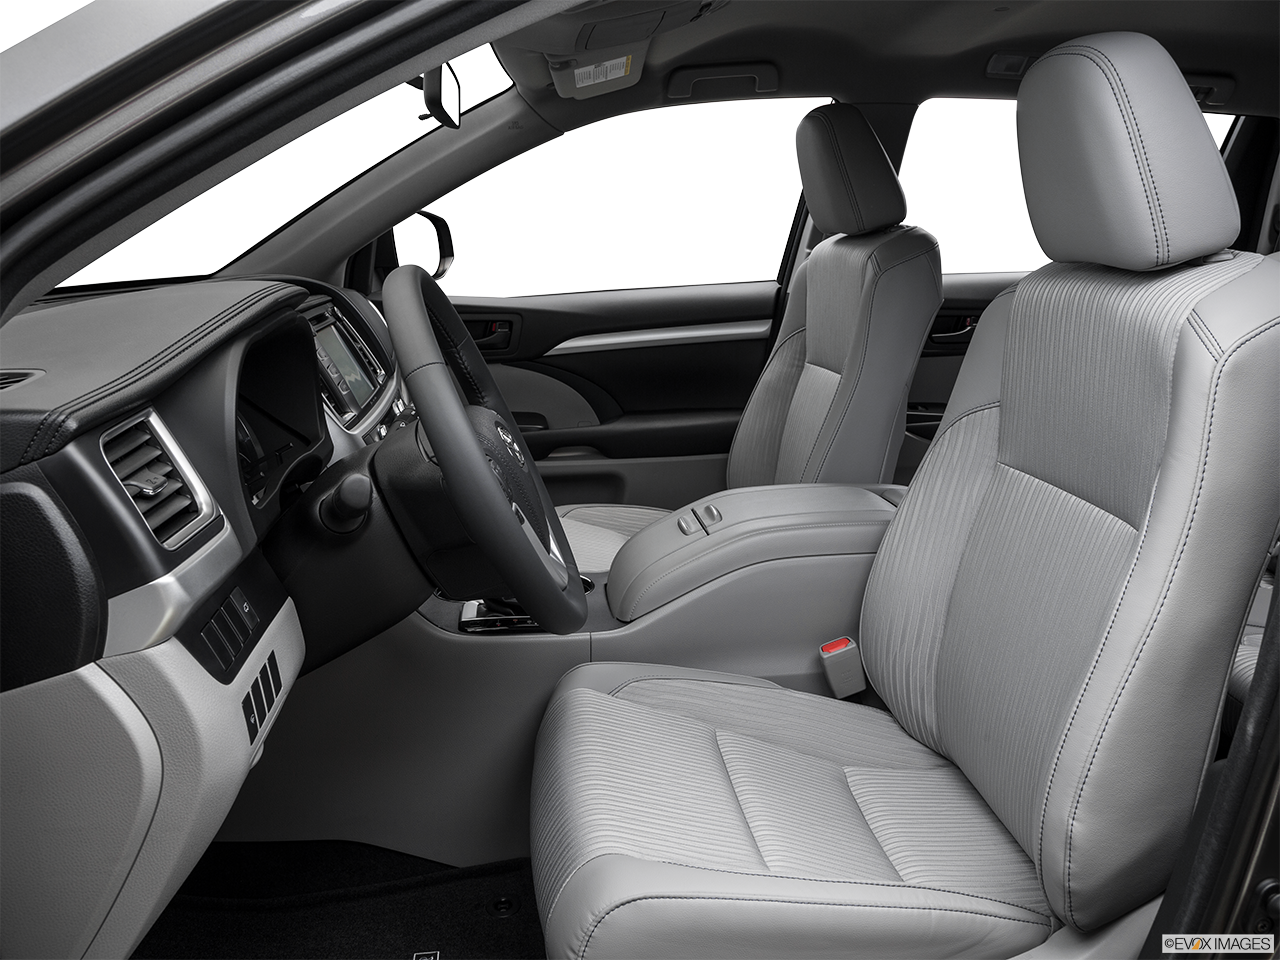 Research The 2016 Toyota Highlander in Moreno Valley